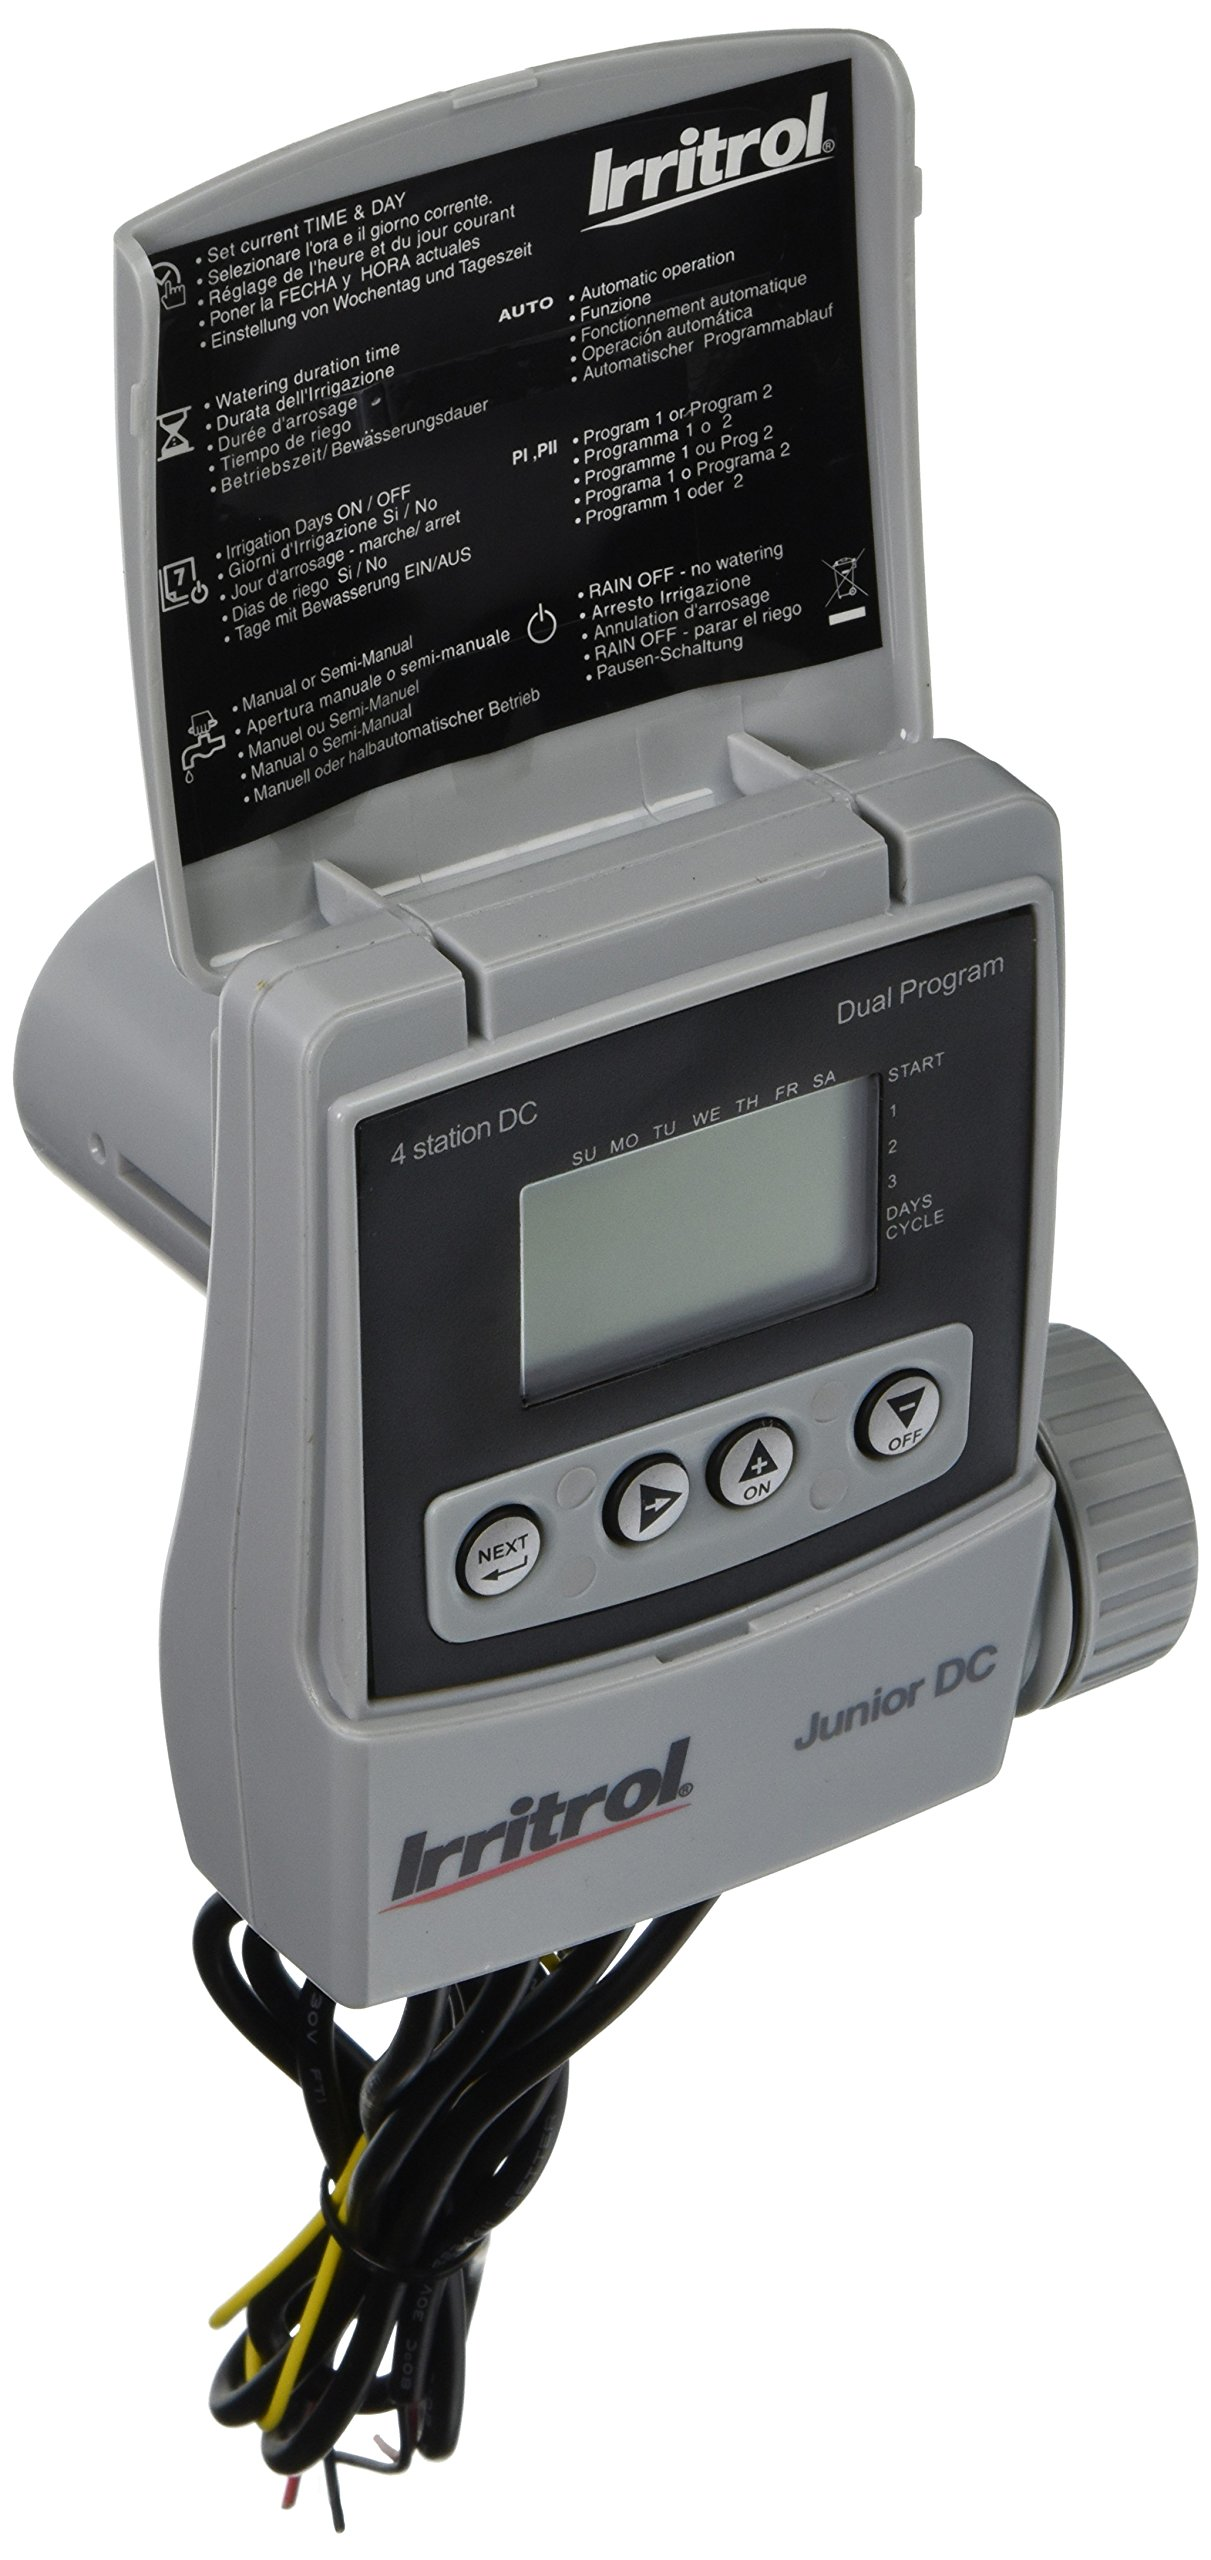 Irritrol JRDC-4 Battery Operated 4 Station Irrigation Controller